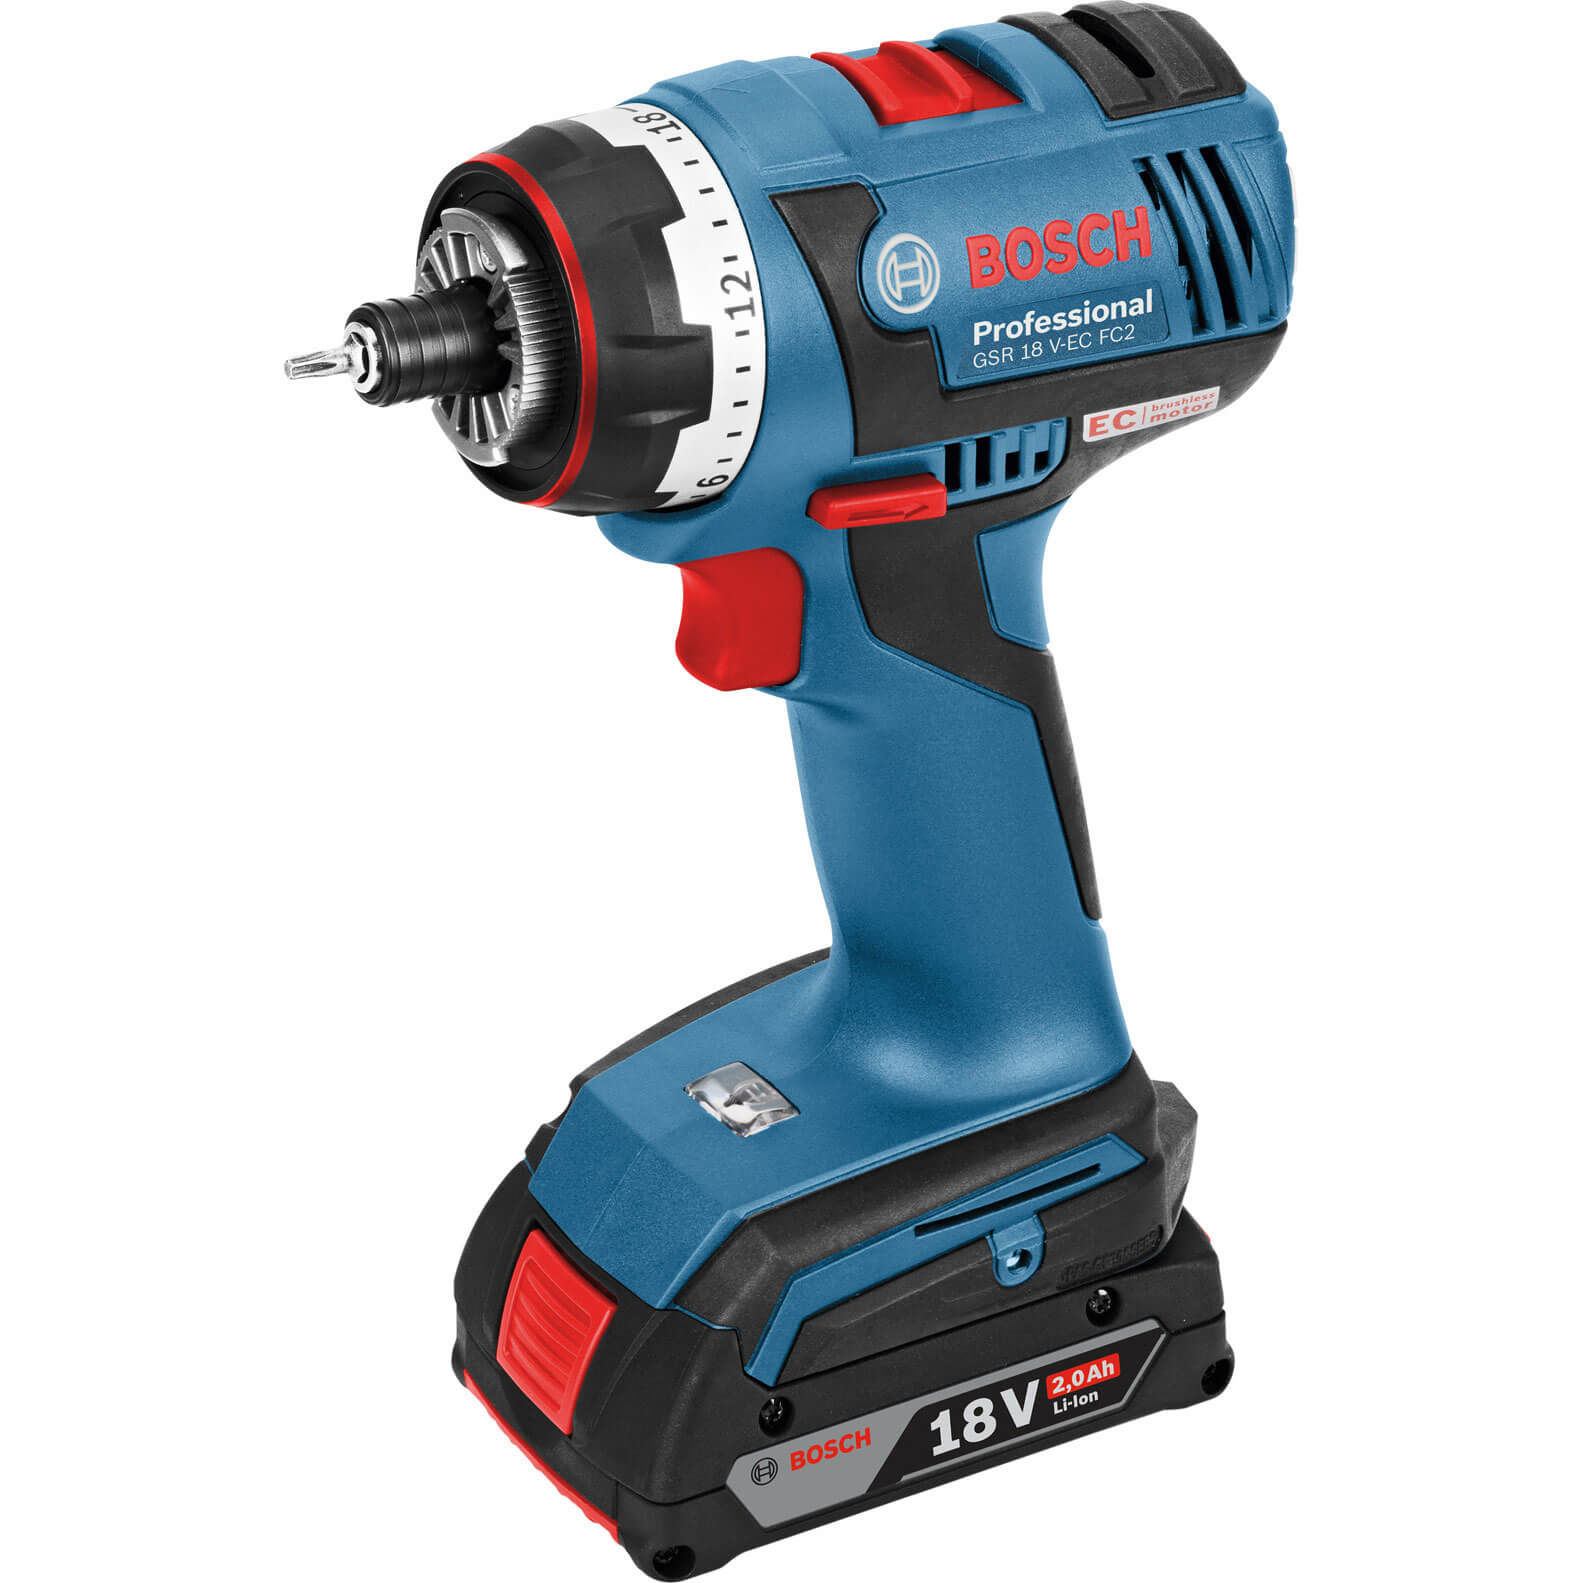 bosch gsr 18 v ec fc2 18v cordless brushless drill driver. Black Bedroom Furniture Sets. Home Design Ideas